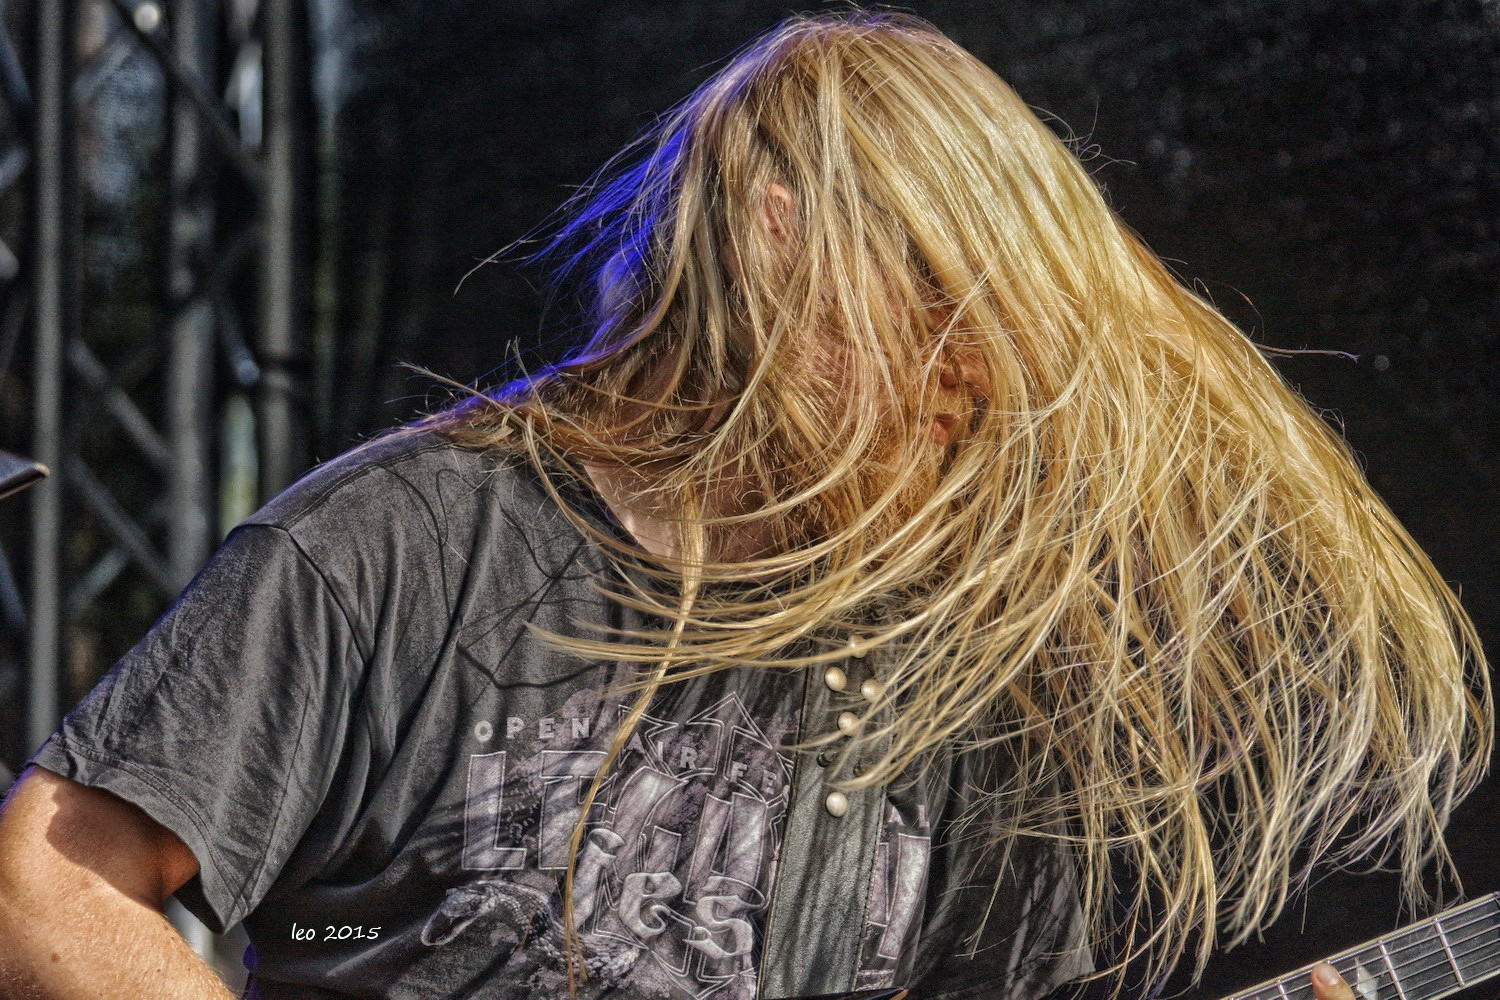 SerpentiC Melodic Death Metal , Klangstadt Open Air 2015 - Oldesloe